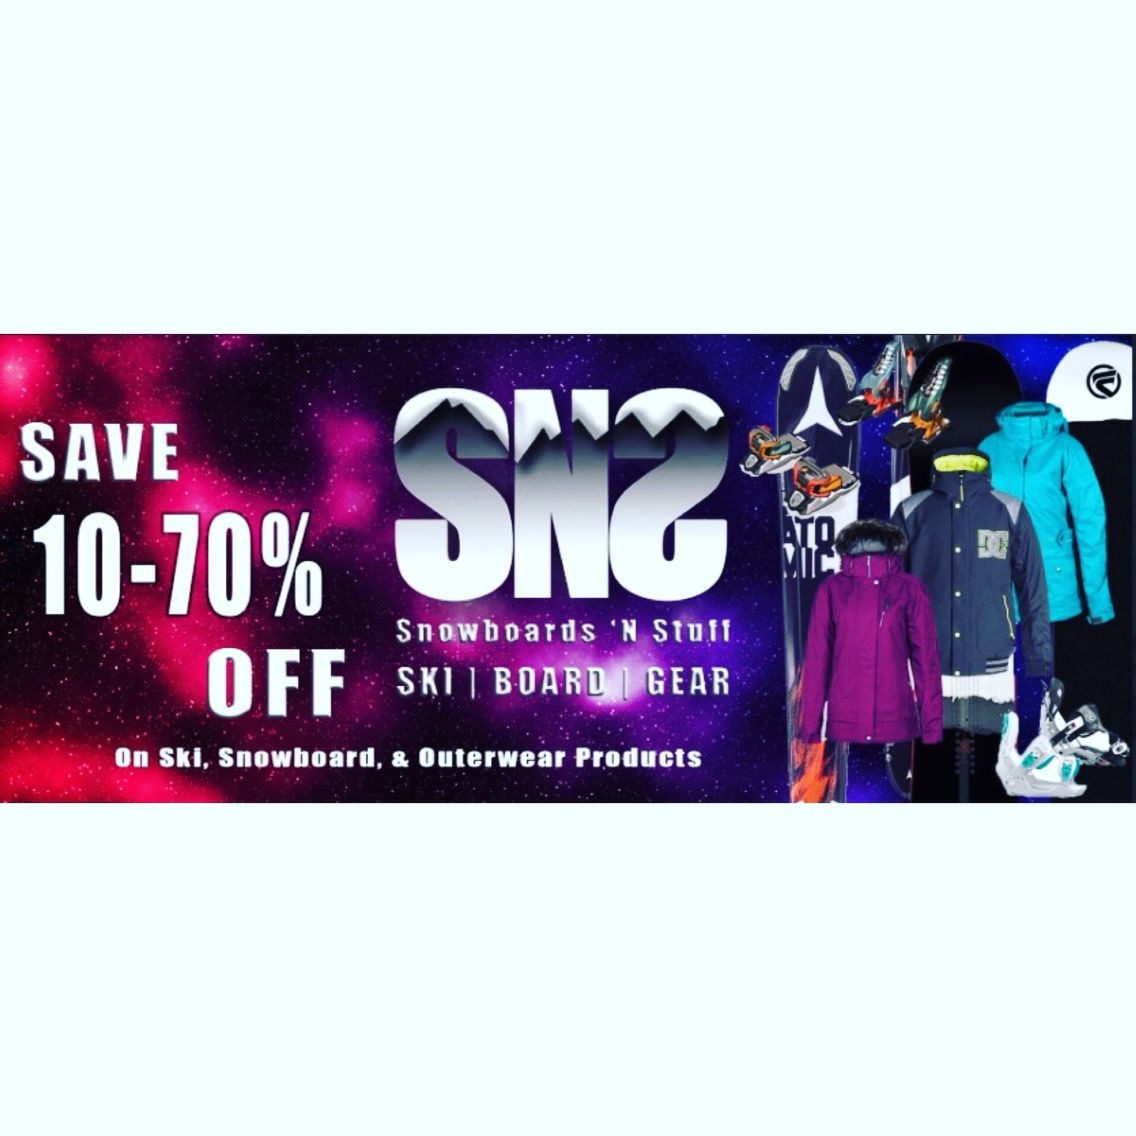 Check out our website at SNSboards.com to see our latest snow gear! Awesome deals for quality stuff :)